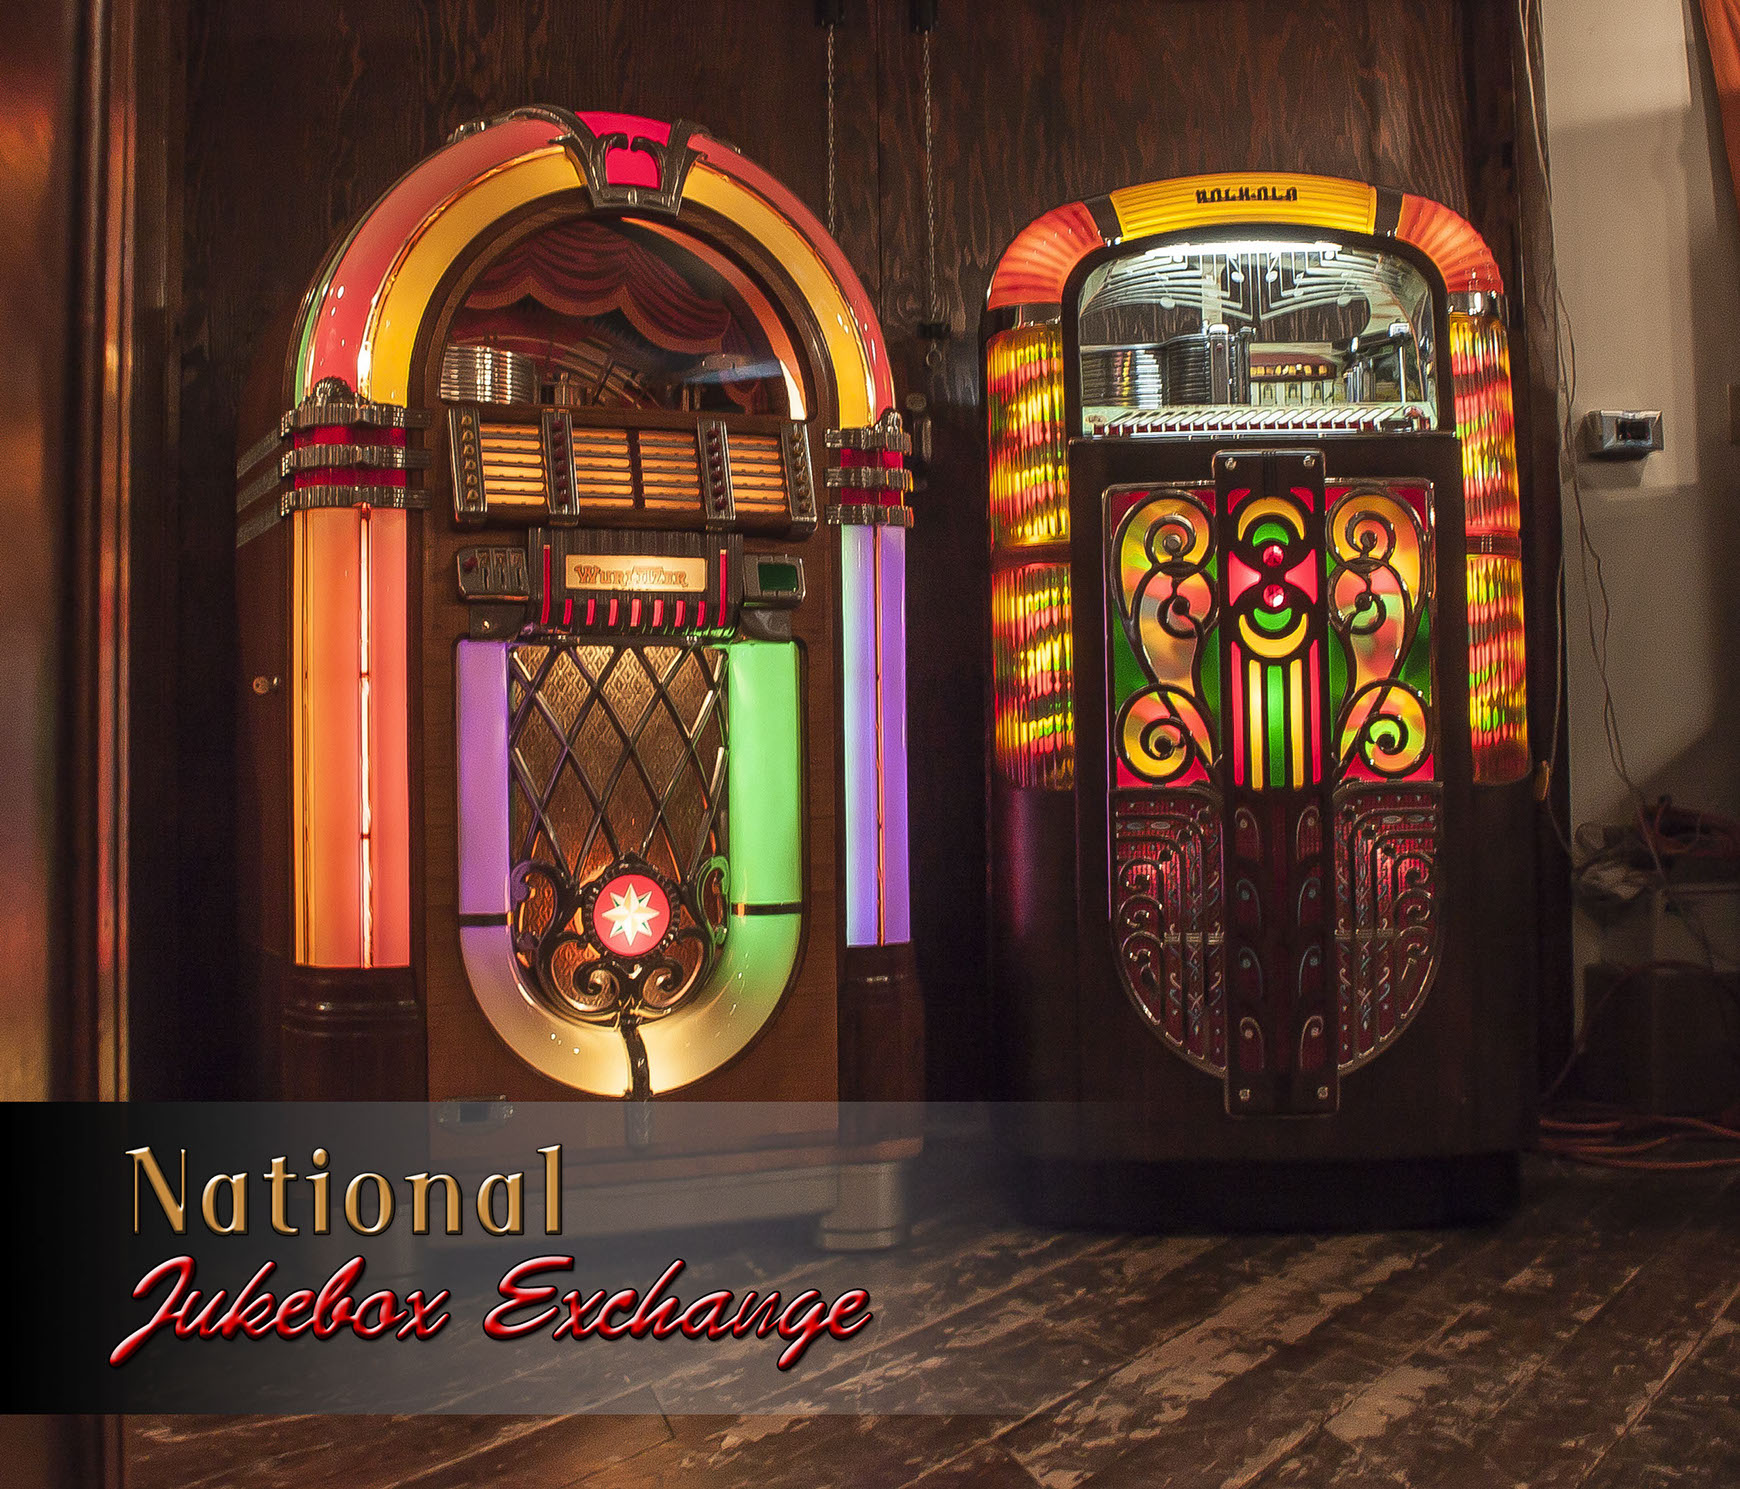 Welcome to National Jukebox Exchange